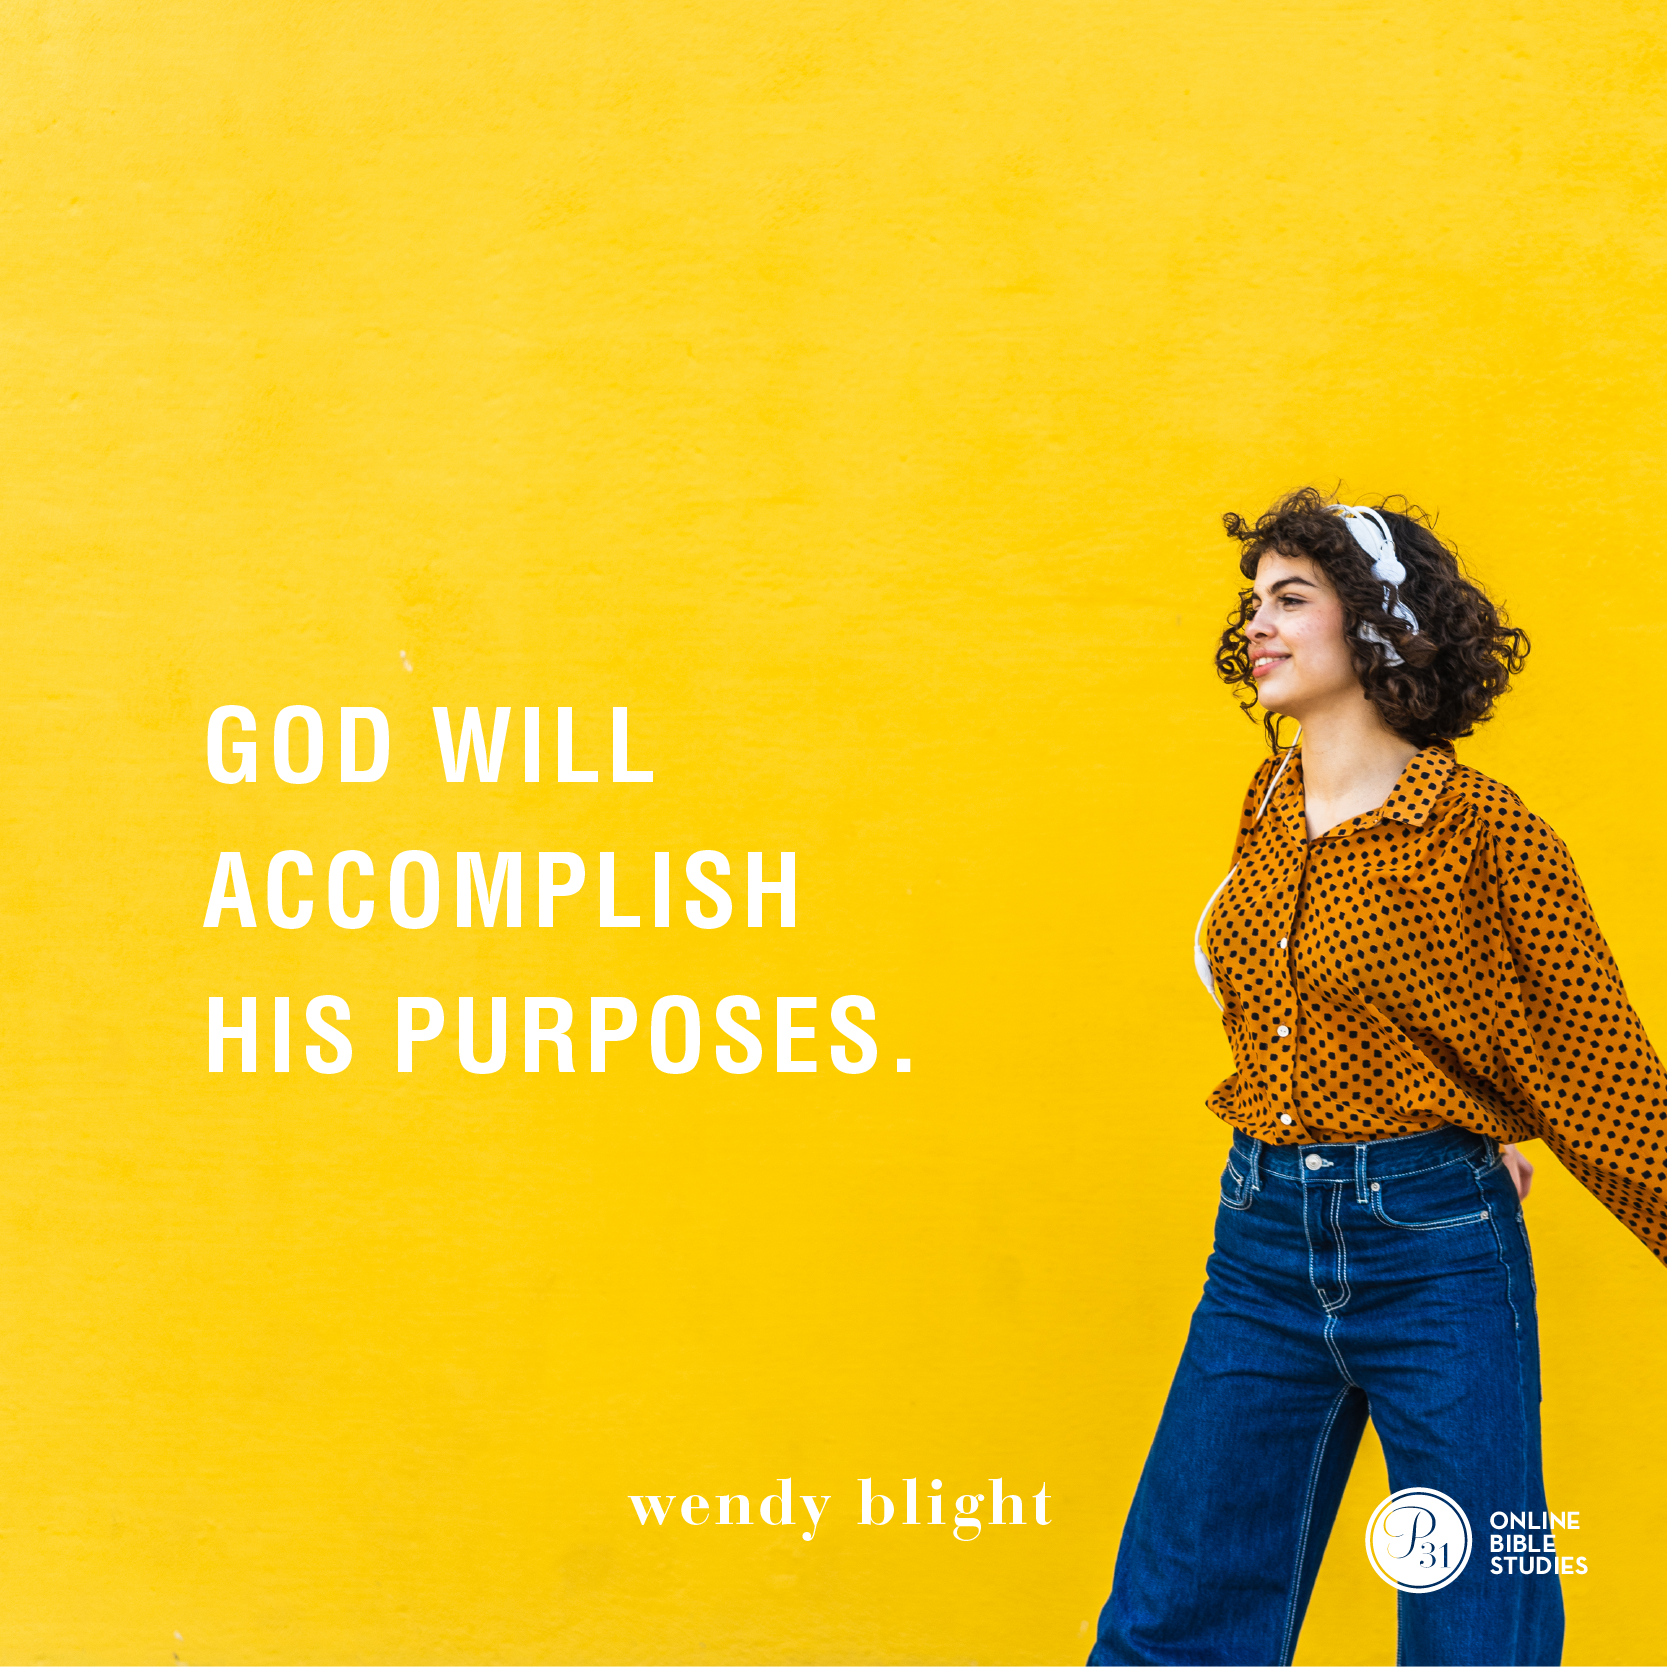 """""""God will accomplish His purposes."""" - Wendy Blight  #HiddenJoyBook   Proverbs 31 Online Bible Studies Week 2 #P31OBS"""